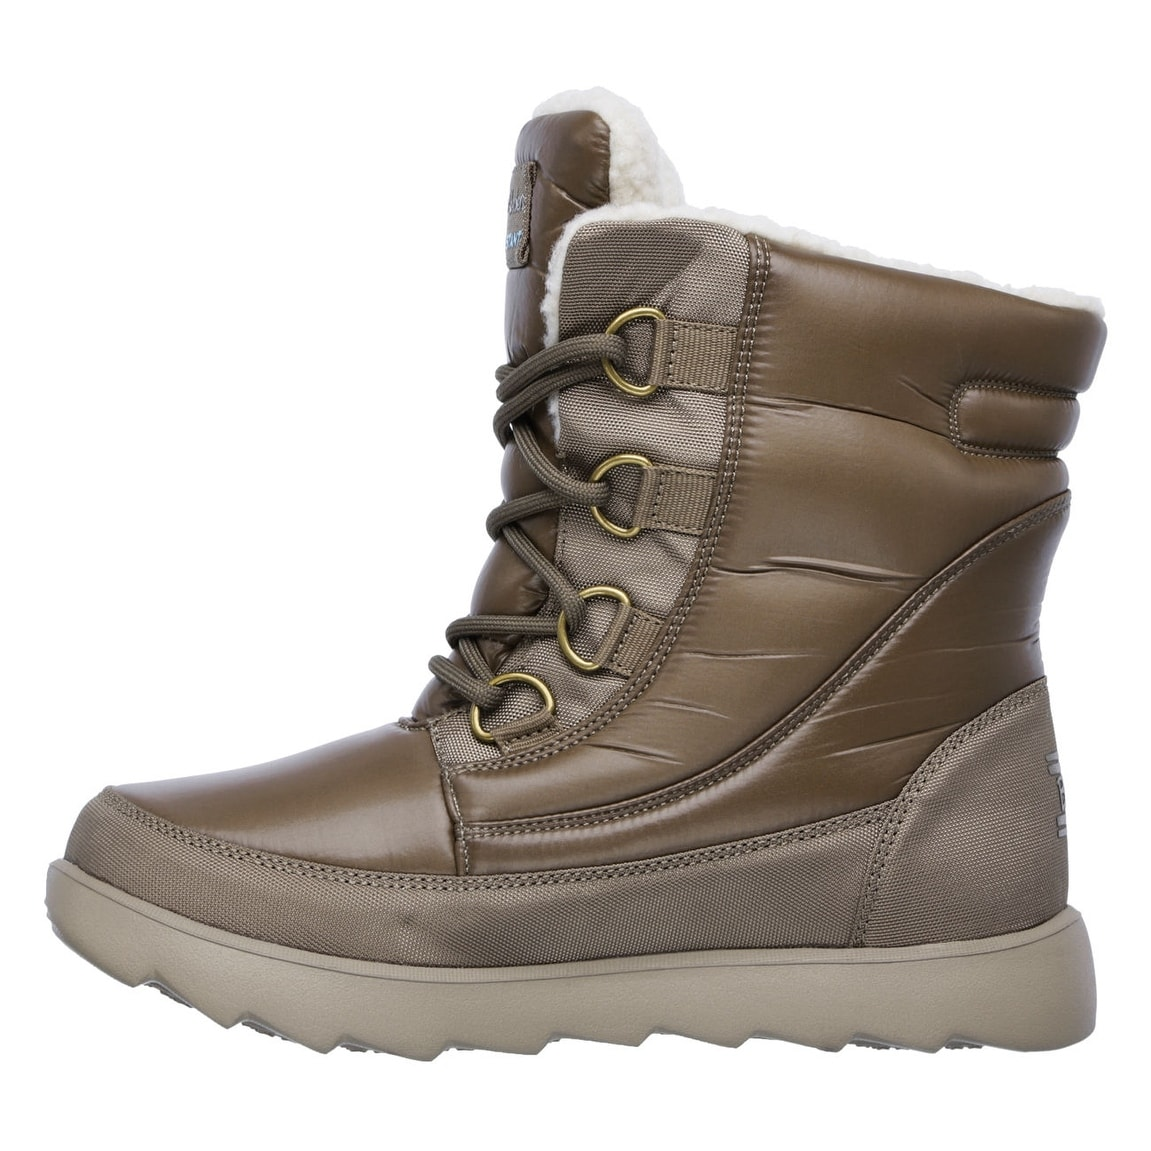 Shop Skechers 34355 TPE Women s BOBS MEMENTOS - SNOW CAP Boot - Free  Shipping Today - Overstock - 14436111 df7d5dc04a81